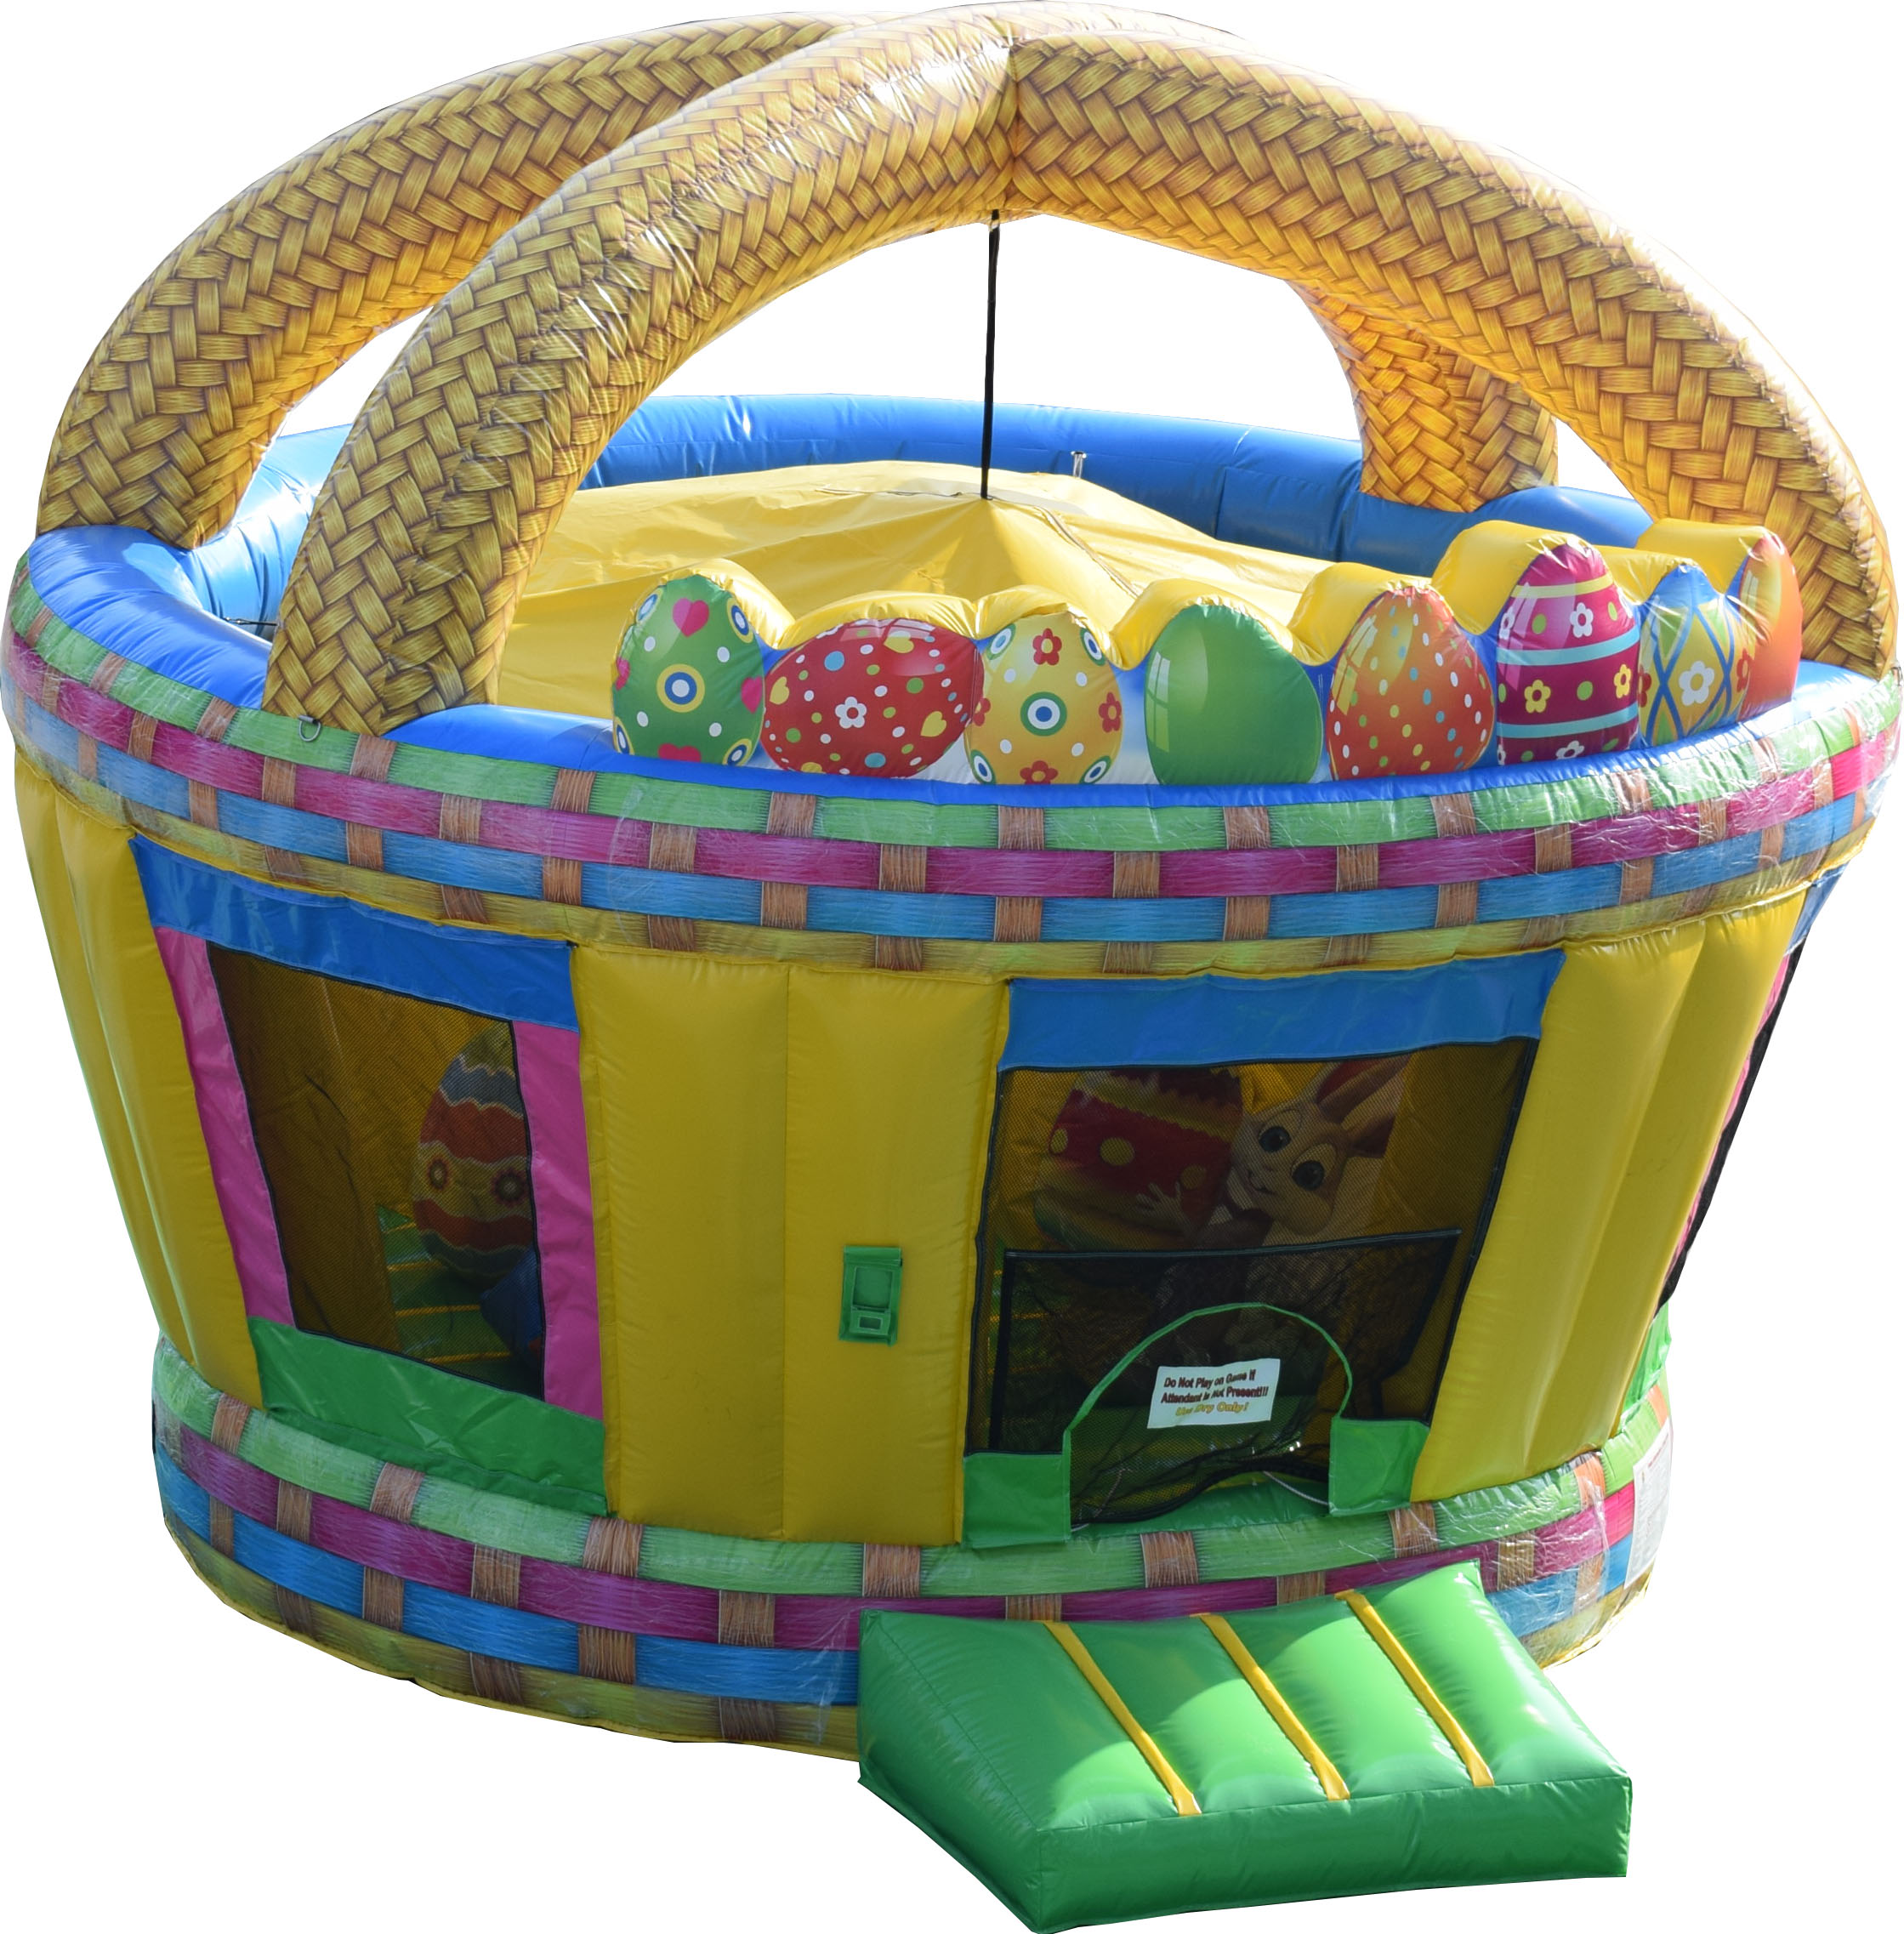 This colorful Easter Moonbounce is 17' l x 14' w x 14' h.